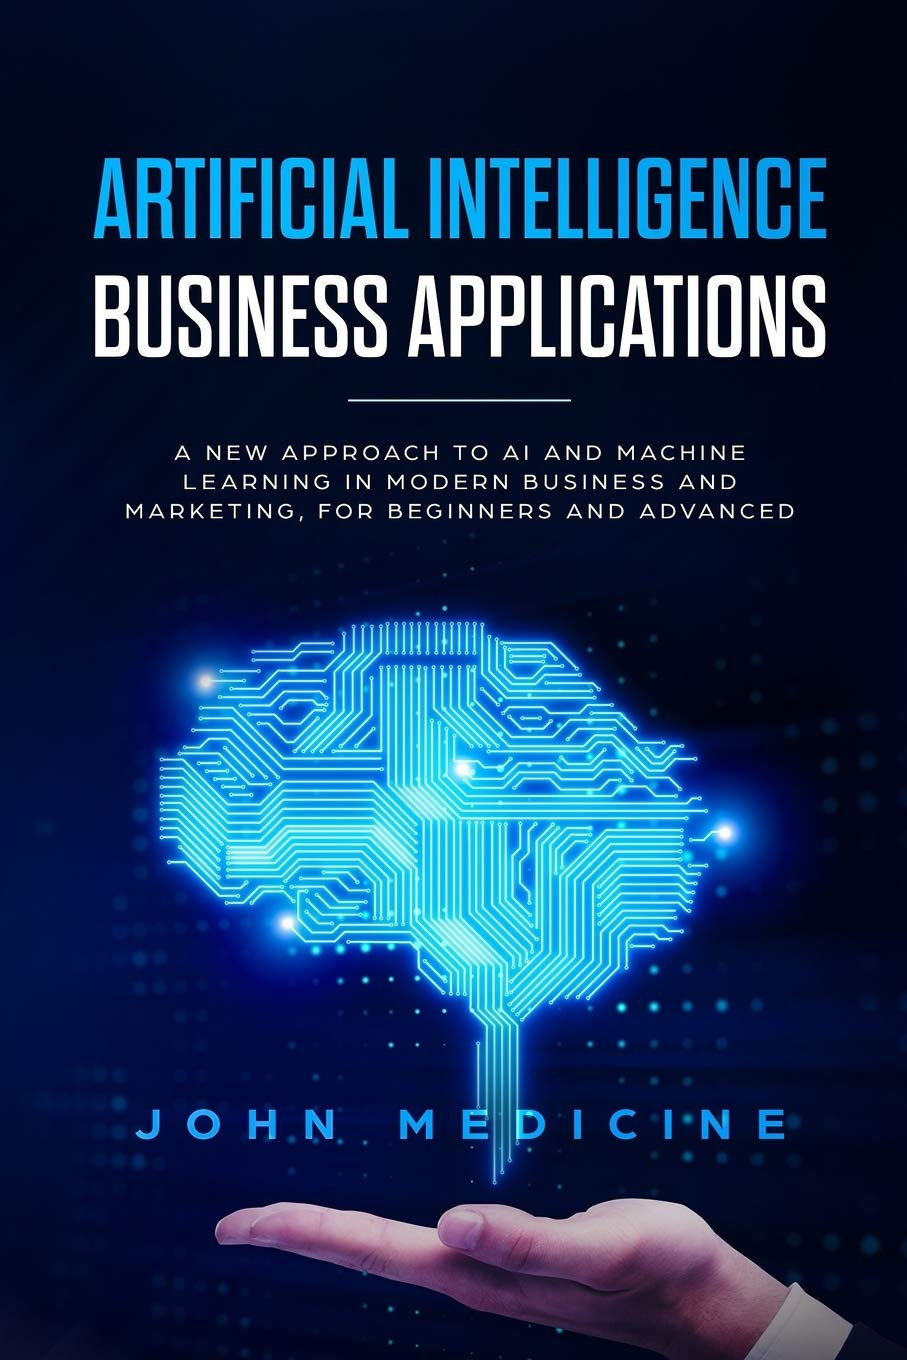 Artificial Intelligence Business Applications: A New Approach to AI and Machine Learning in Modern Business and Marketing for Beginners and Advanced